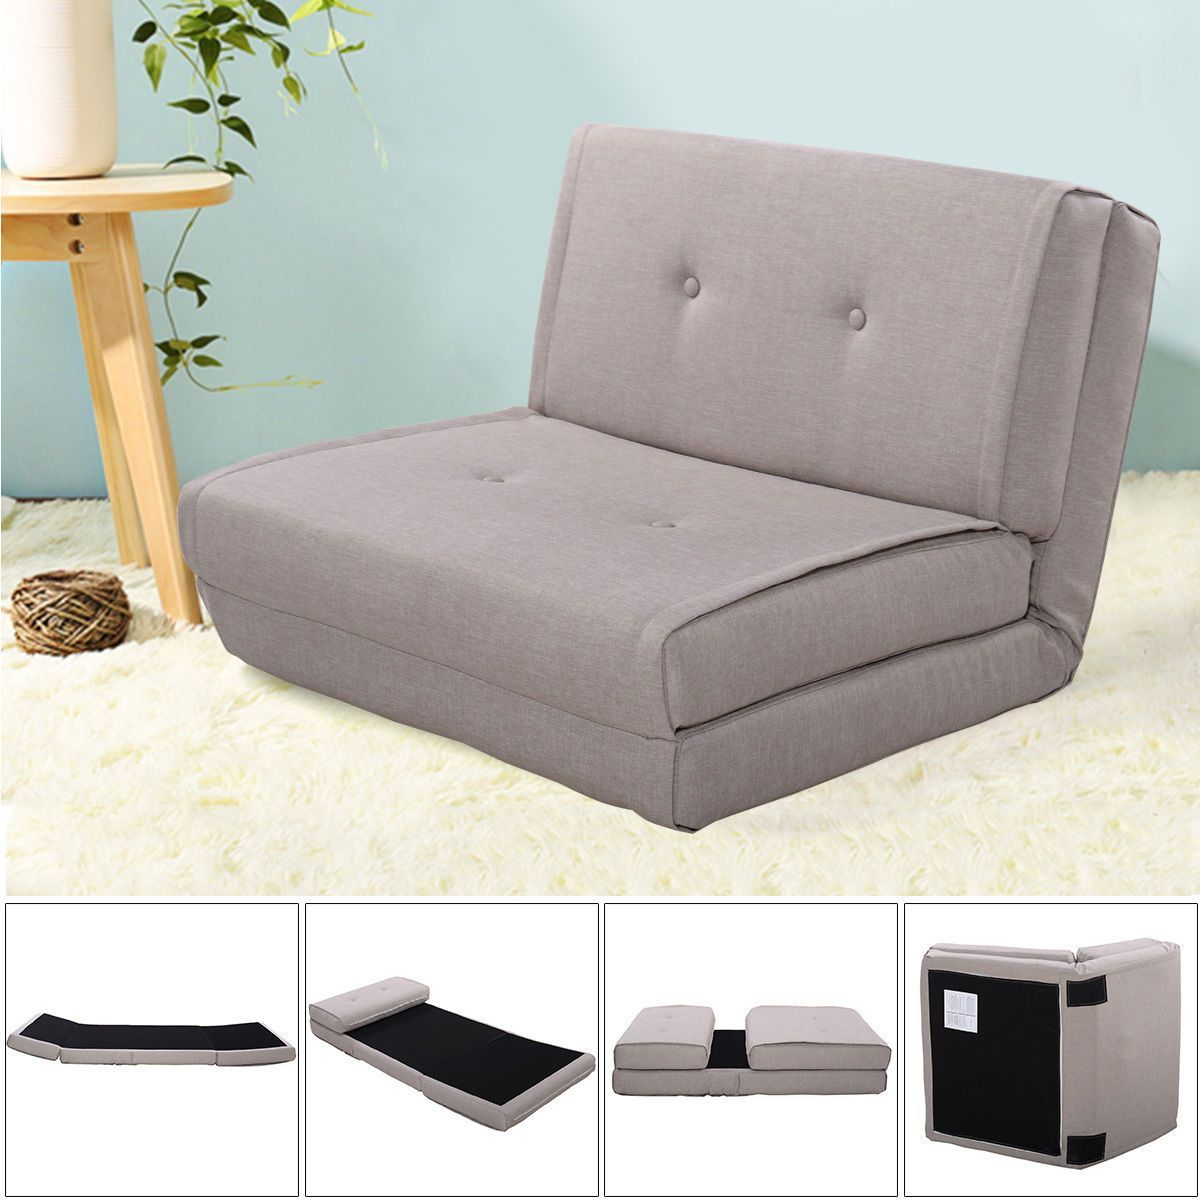 Giantex fold down sofa bed living room flip out lounger convertible